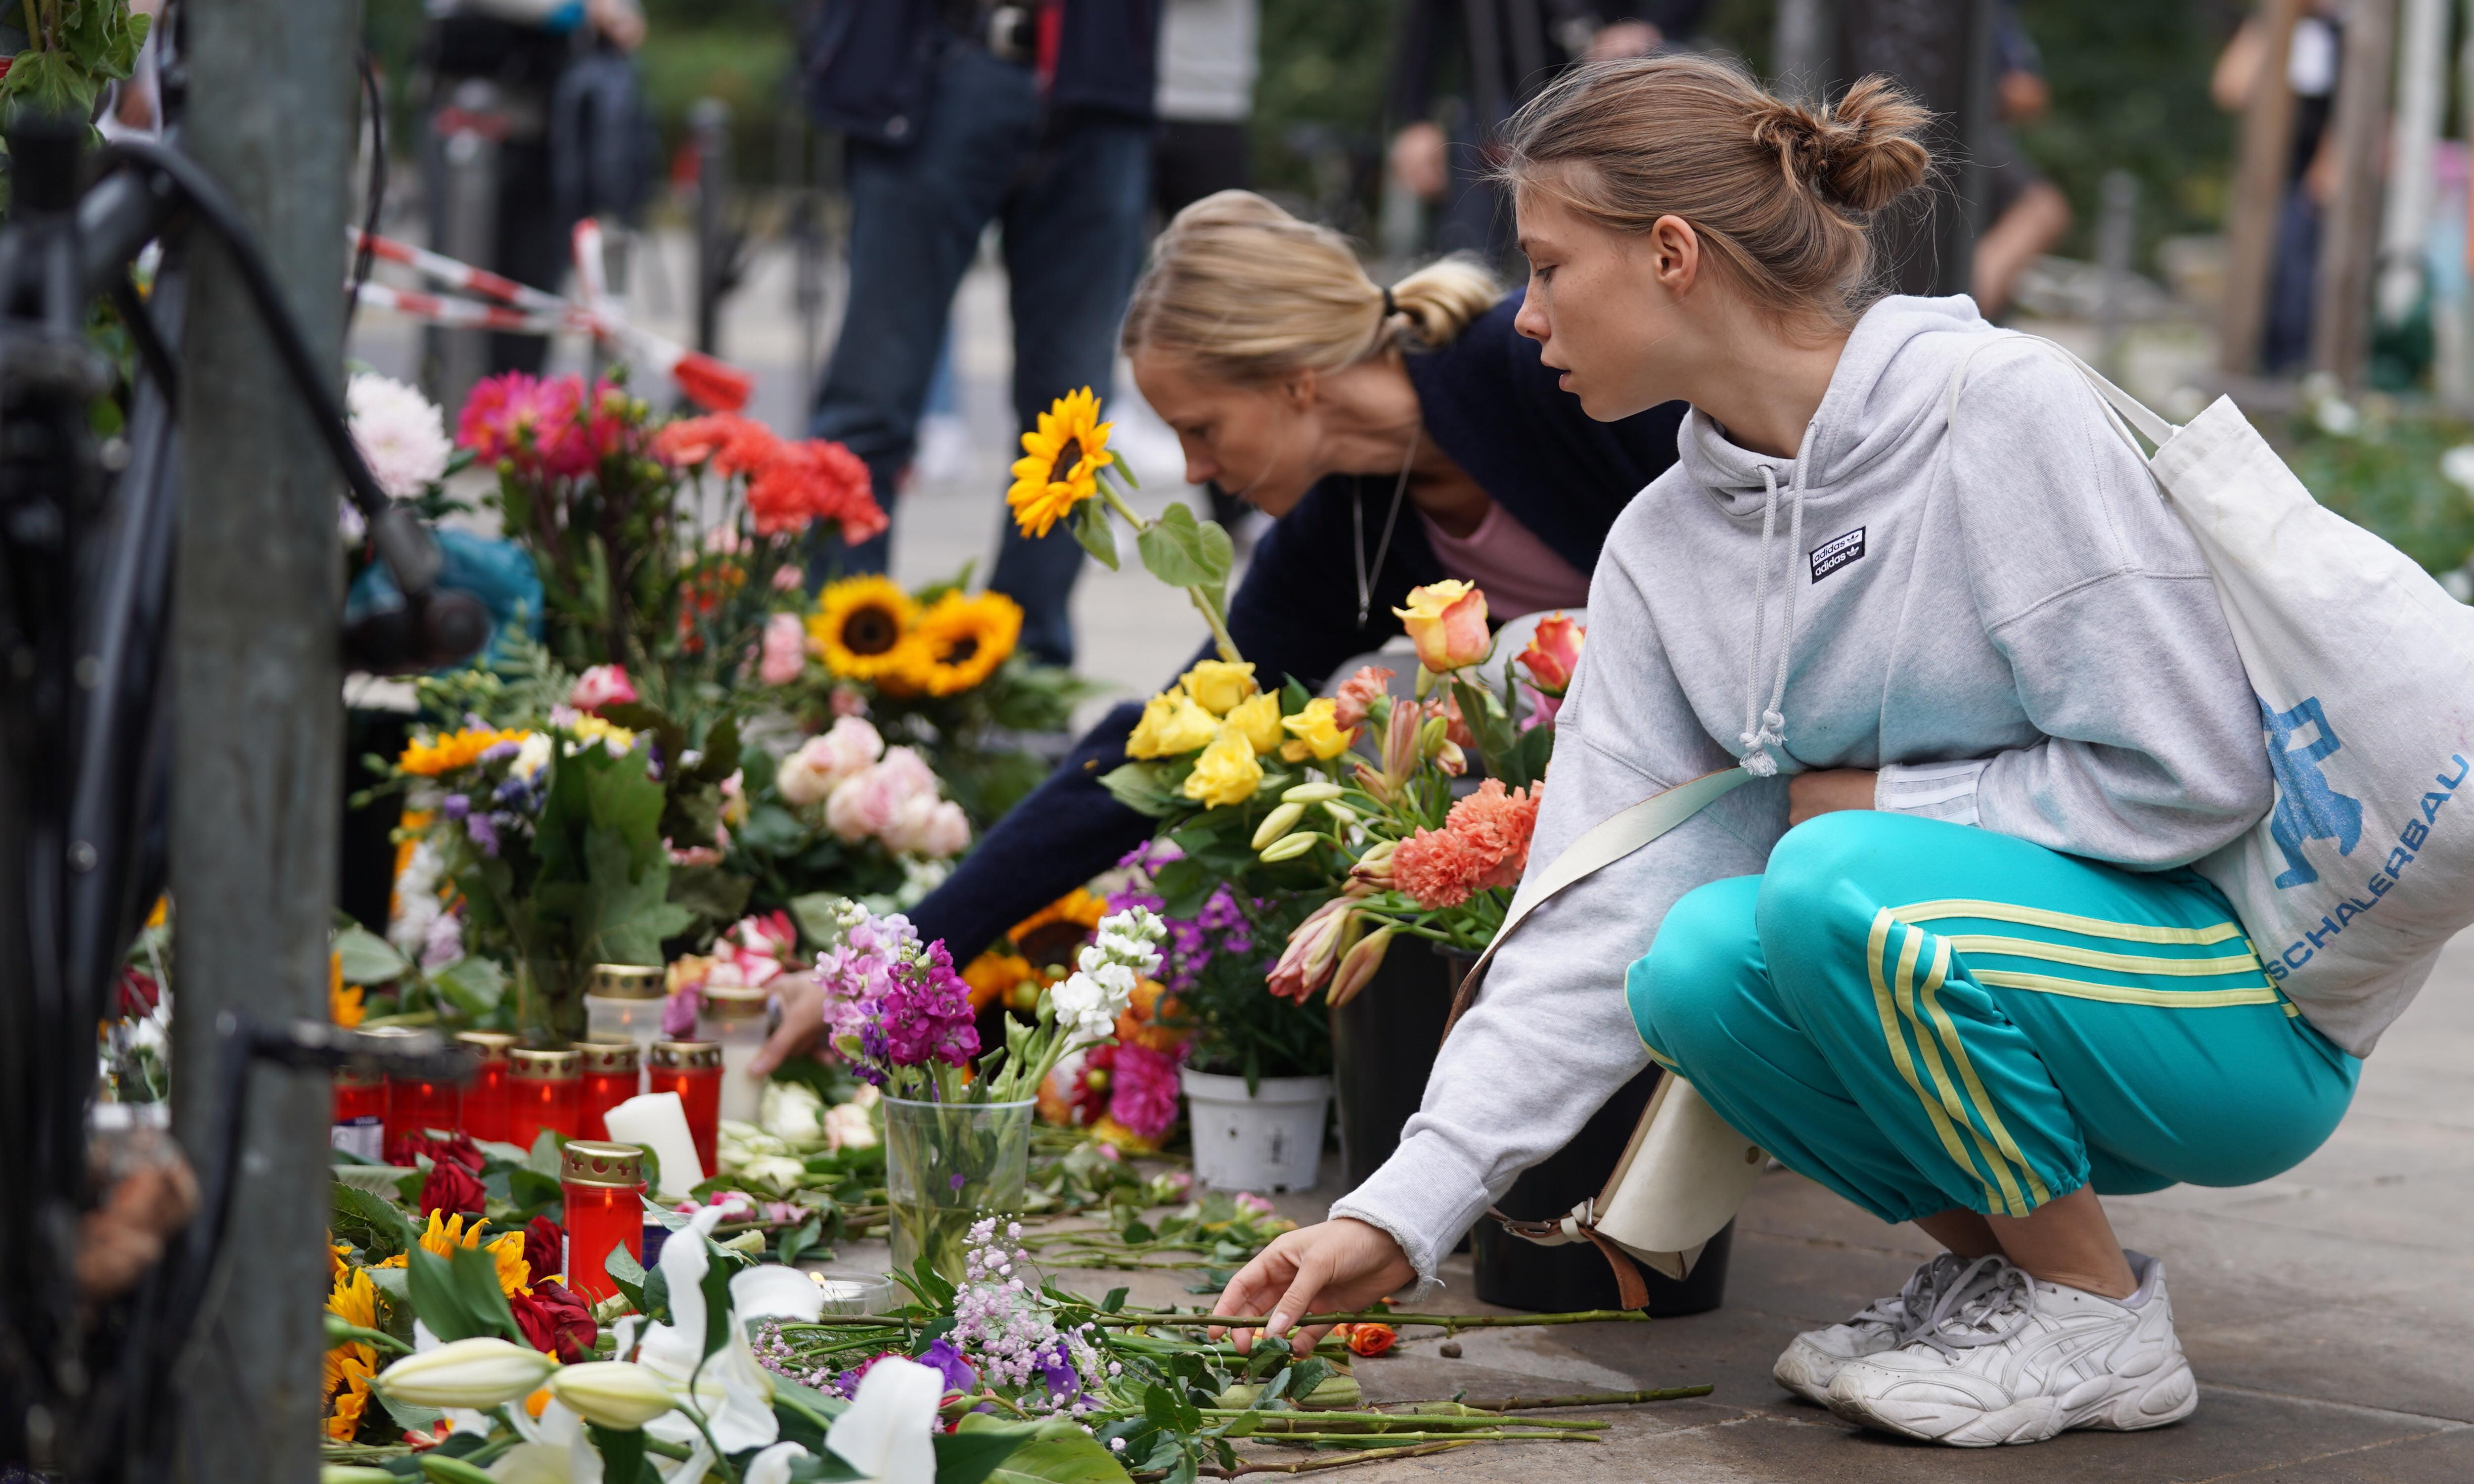 Berliners call for 4x4 ban after four people killed in collision